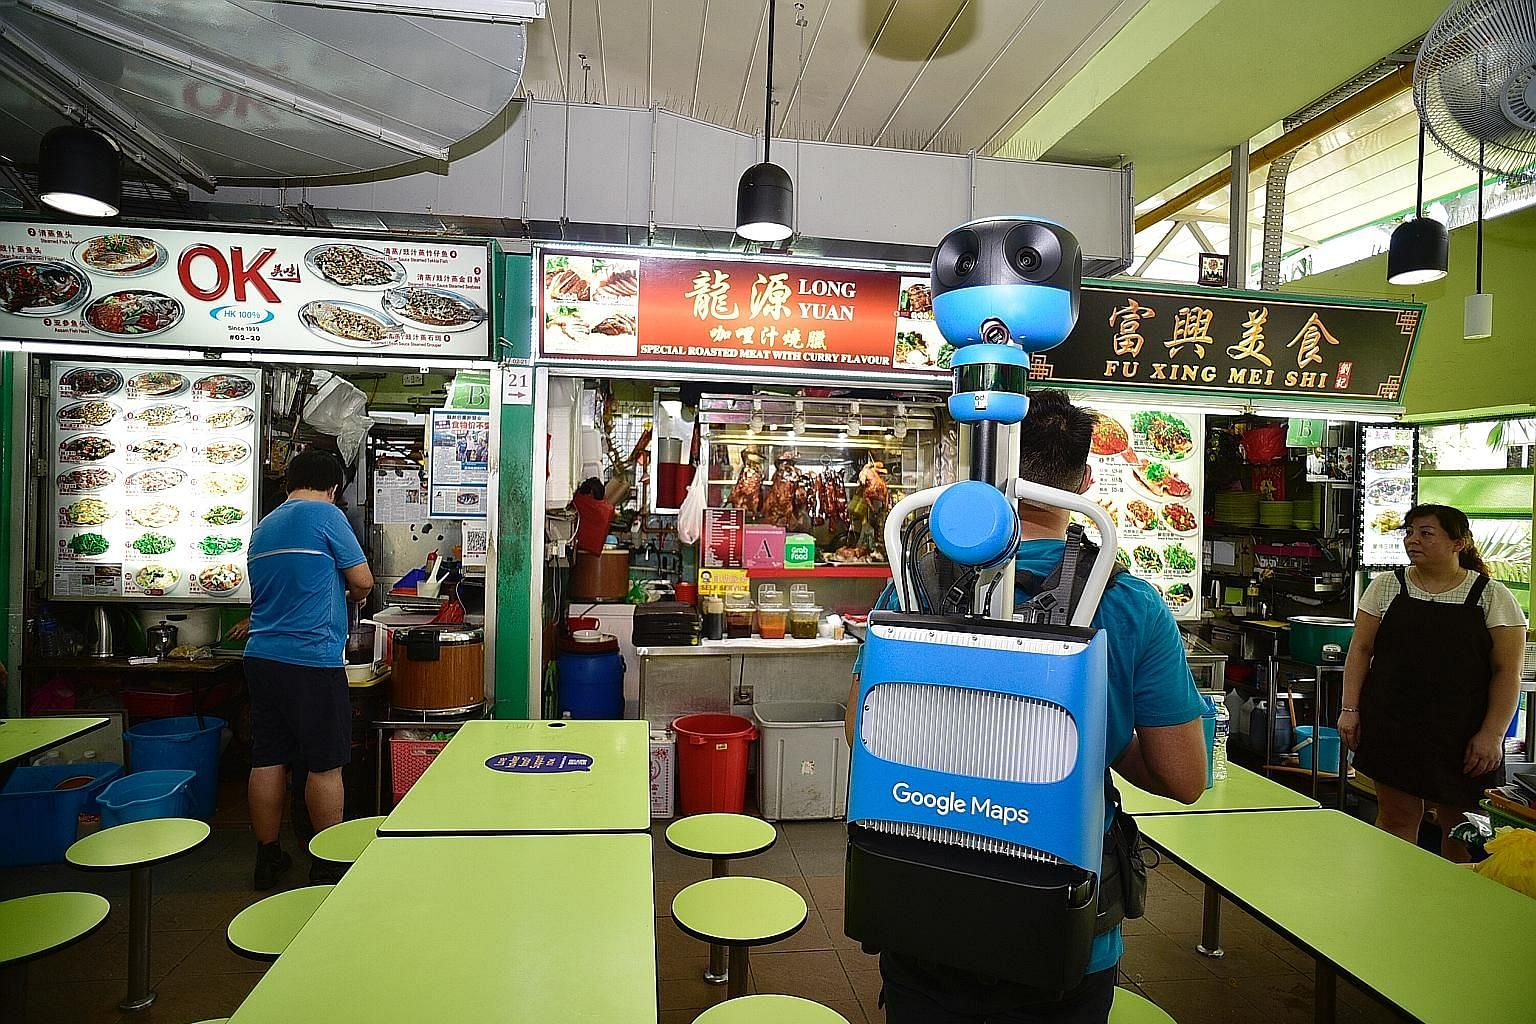 Street View Trekker operator Keith Lee, 24, capturing indoor imagery at Dunman Food Centre yesterday. All 114 hawker centres here will have their individual stalls marked with separate pins on the Google Maps app by early next year, showing their exa